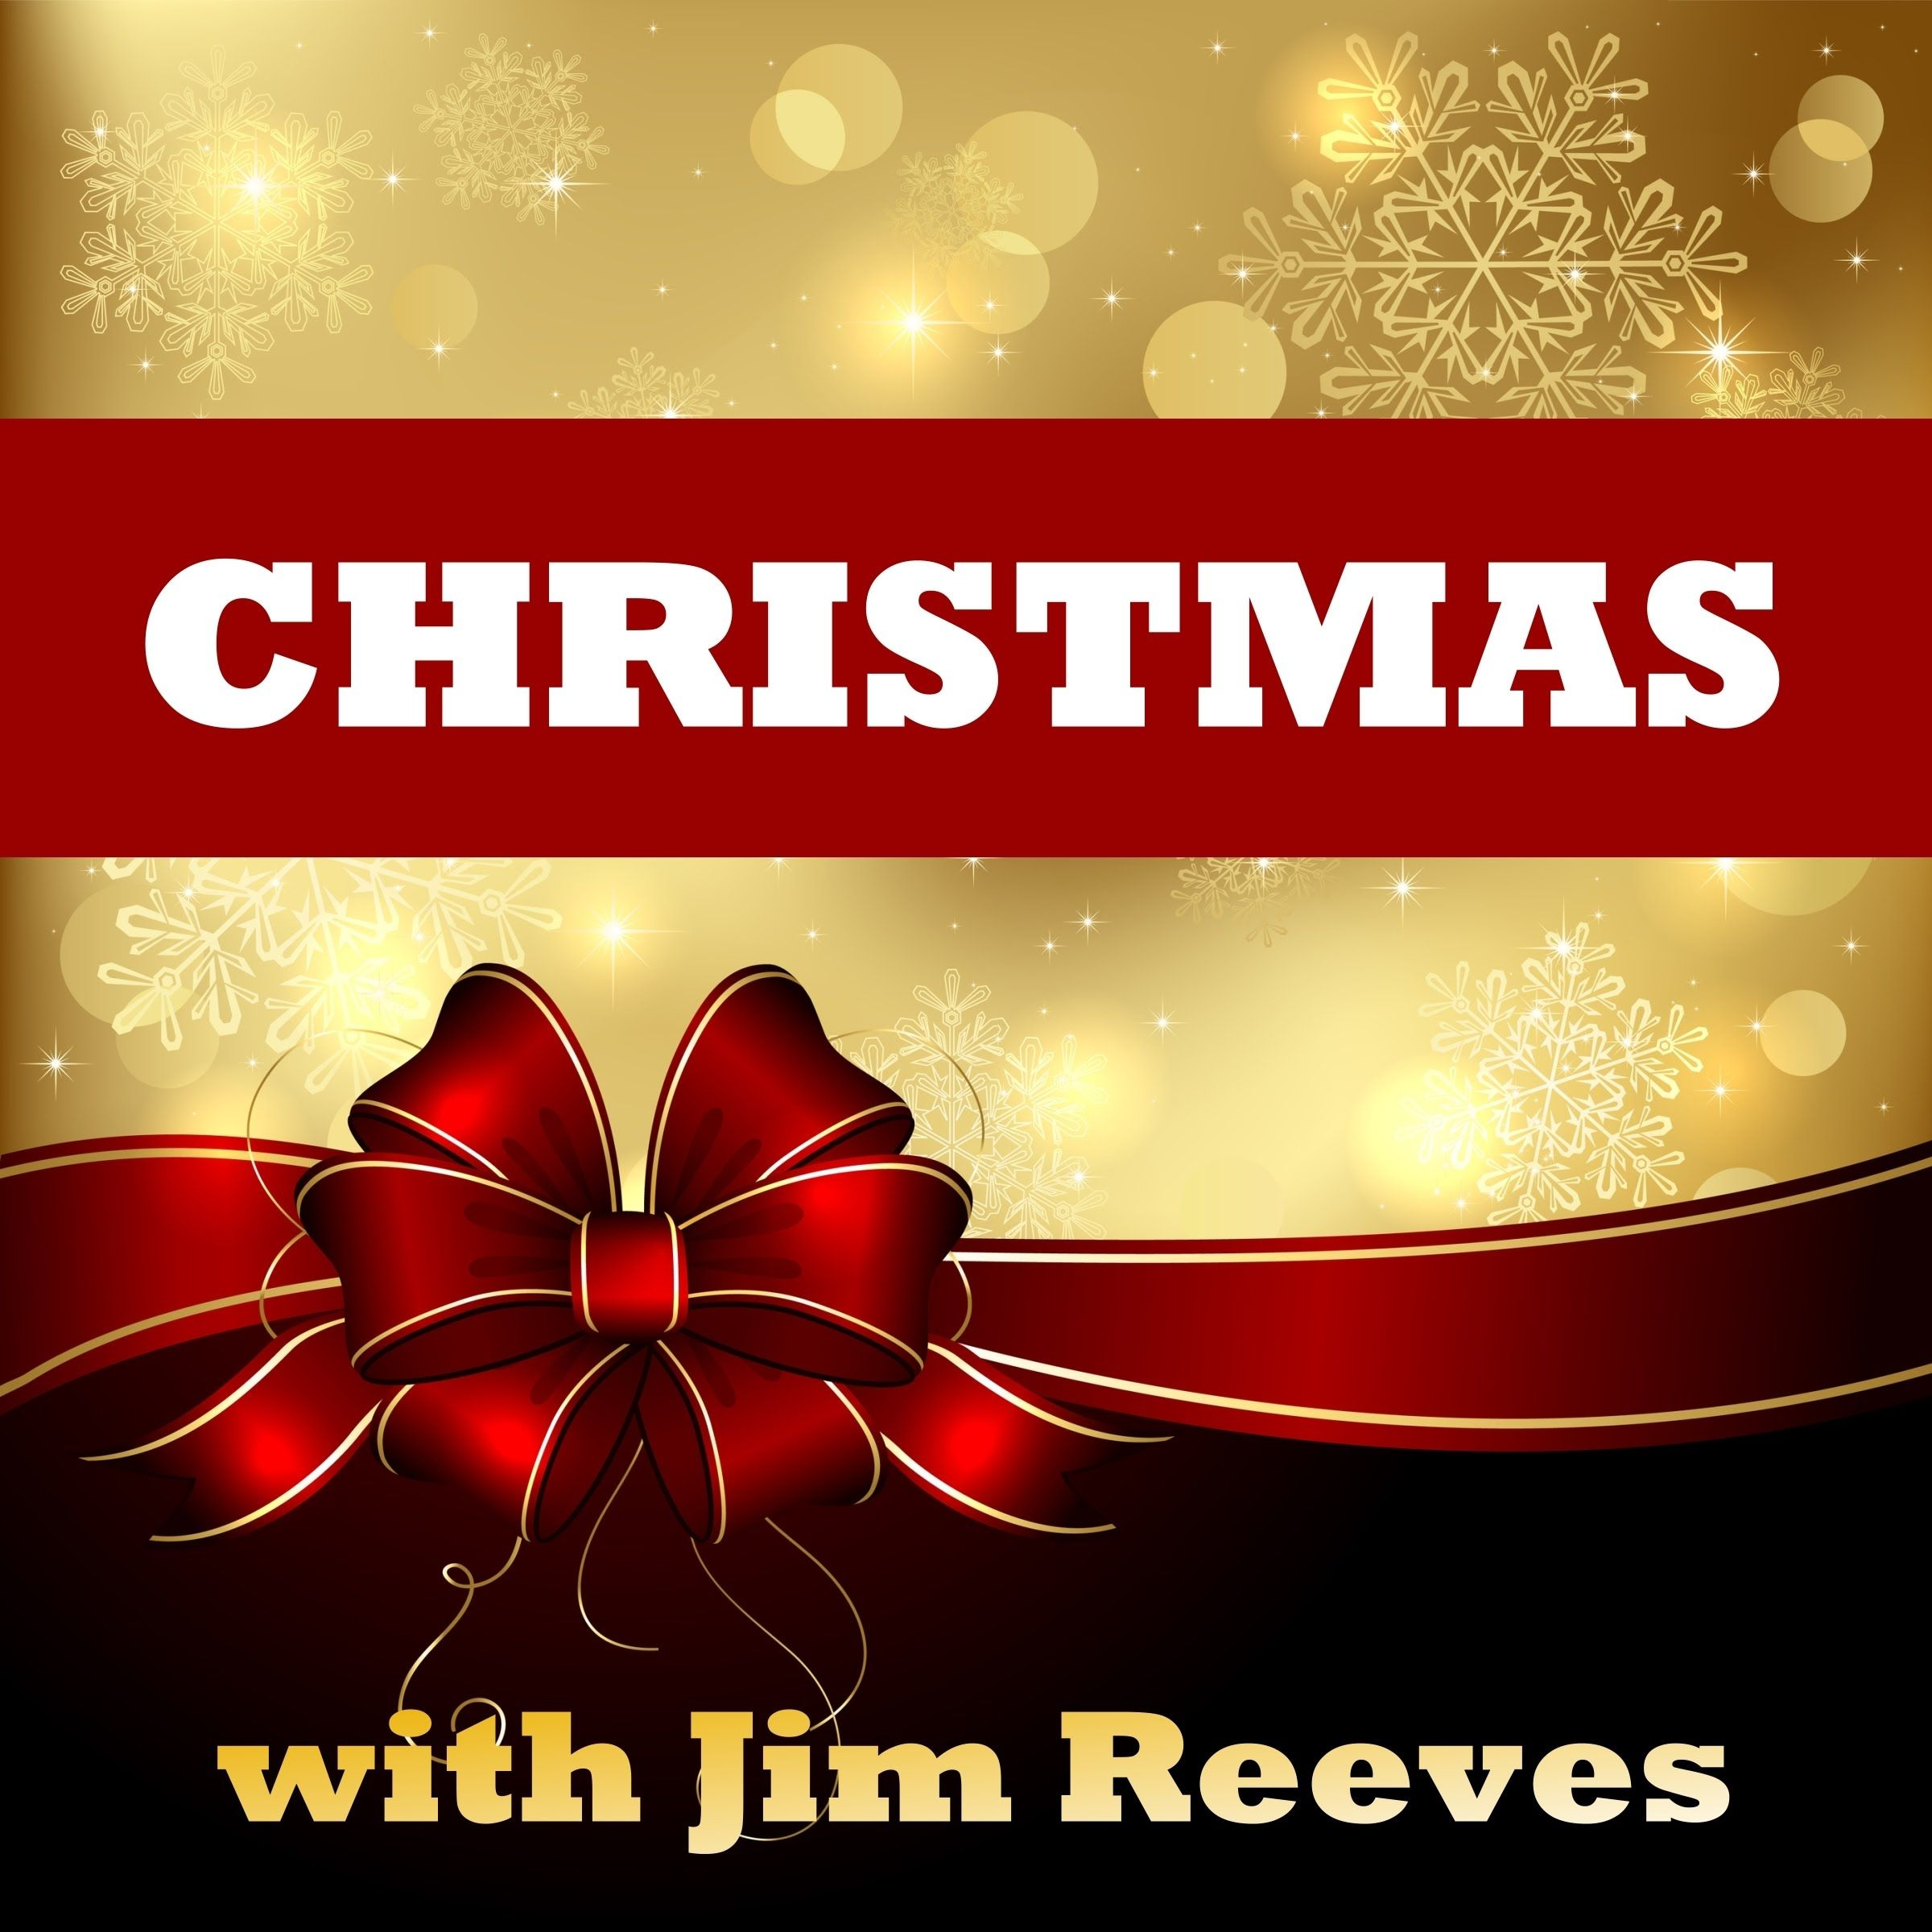 Jim Reeves - Christmas With Jim Reeves [Full Album] | wow ...